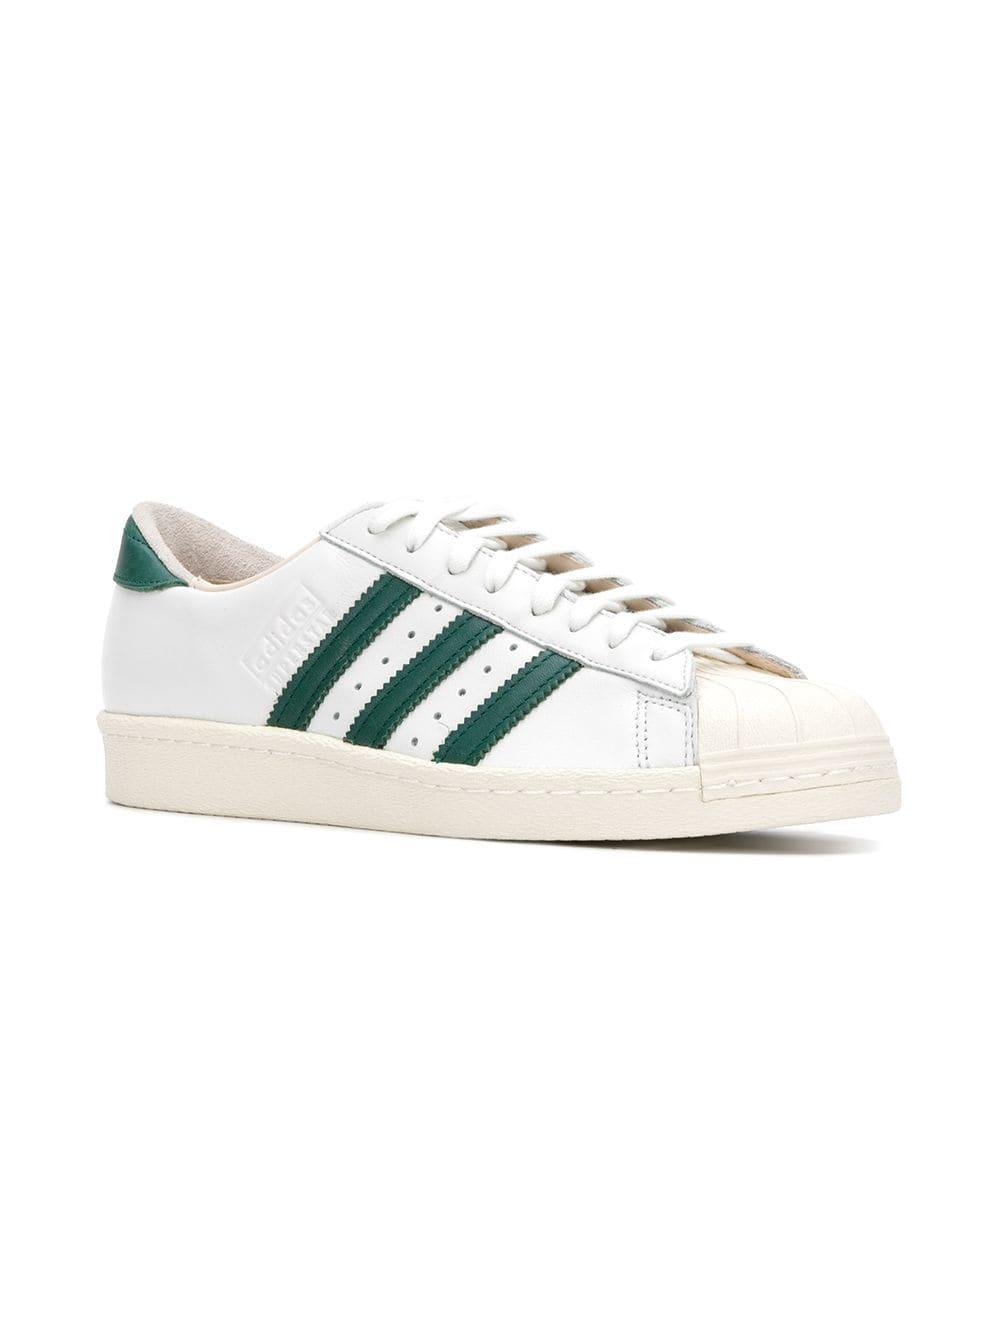 low priced d57d8 02b46 Lyst - adidas Superstar Low Top Trainers in White for Men